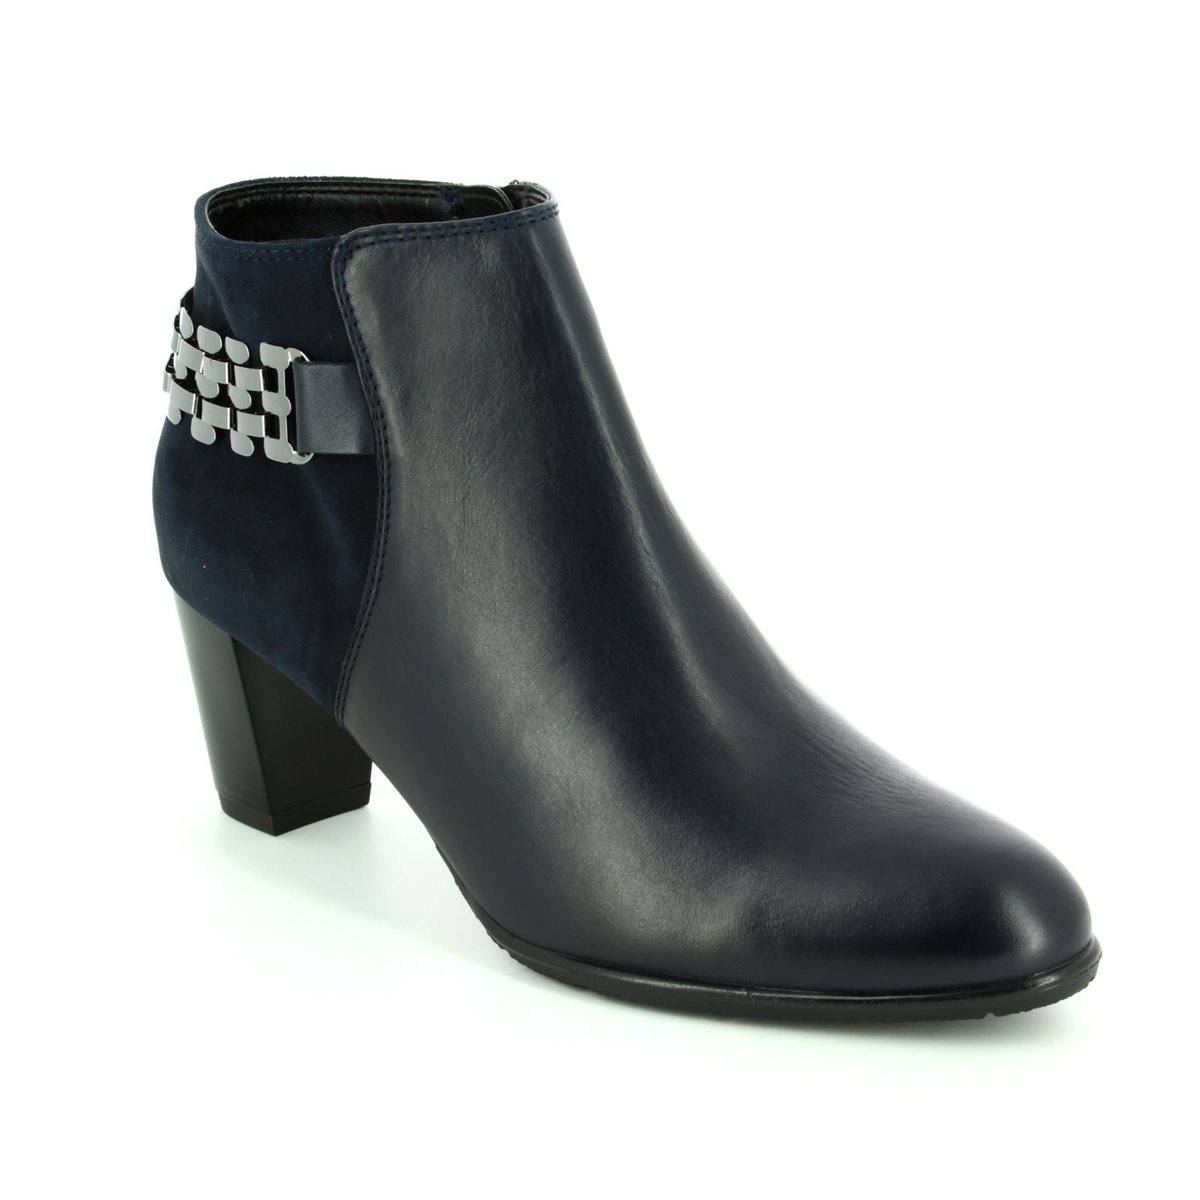 a535fd305dee Ara Ankle Boots - Navy - 43463 75 TOULOUISE